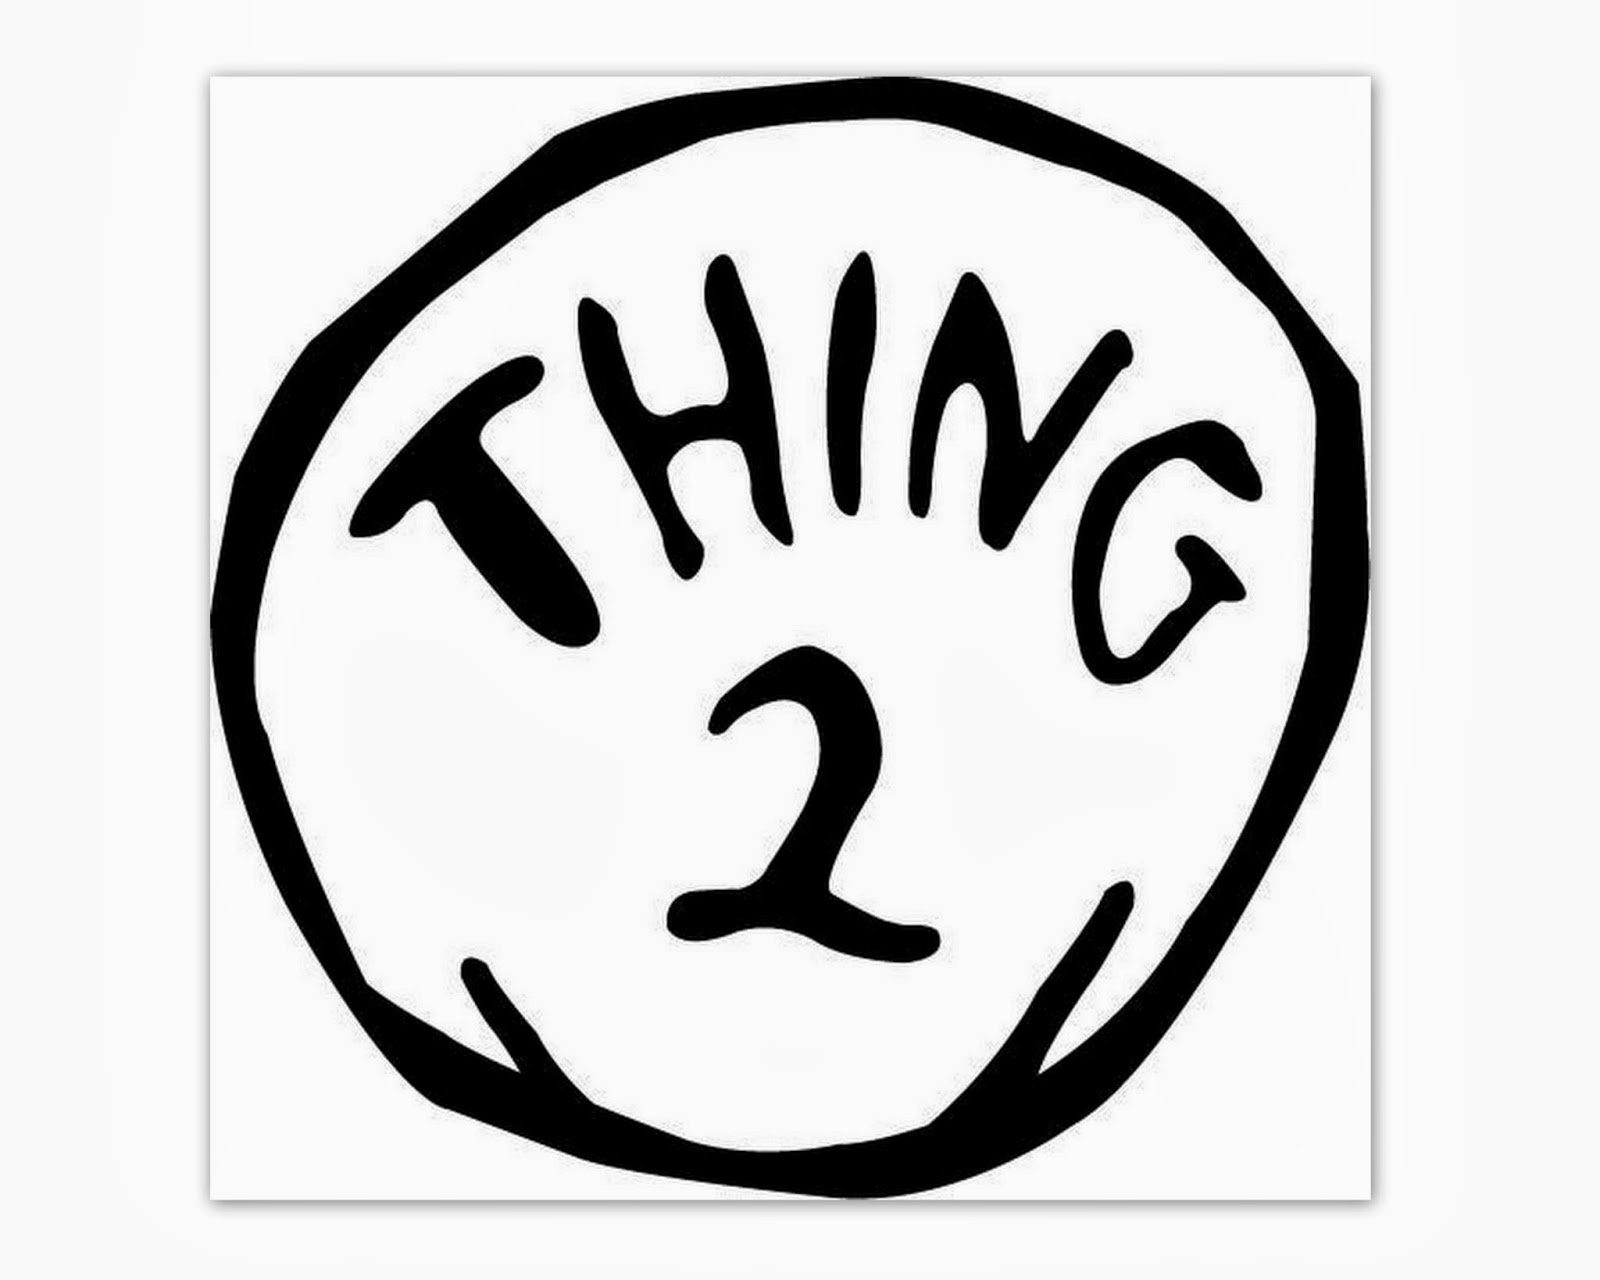 Thing 1 And Thing 2 Free Printable Template (77+ Images In - Thing 1 Thing 2 Free Printables